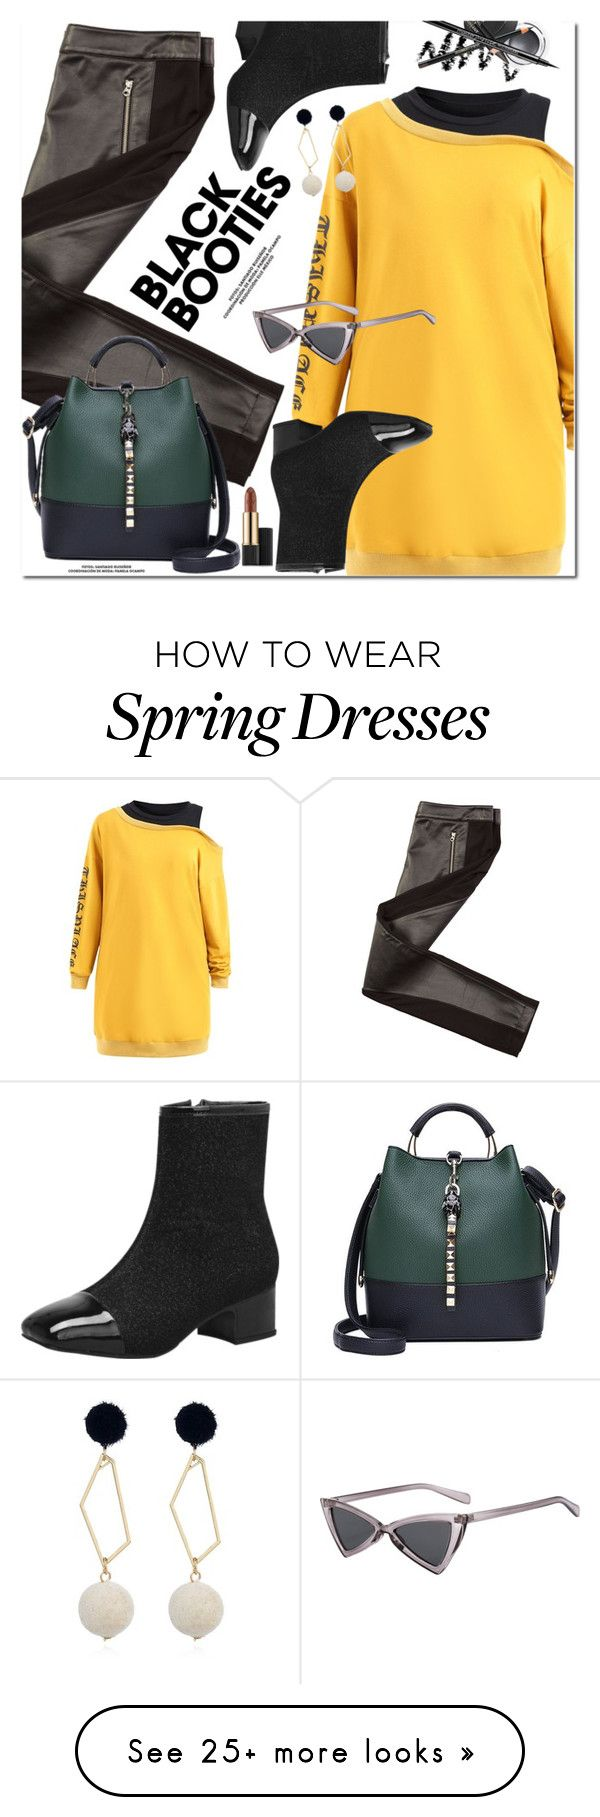 """""""Back to Basics: Black Booties"""" by oshint on Polyvore featuring Armani Exchange, Estée Lauder, cool, fabulous, wonderful, blackbooties and gamiss"""